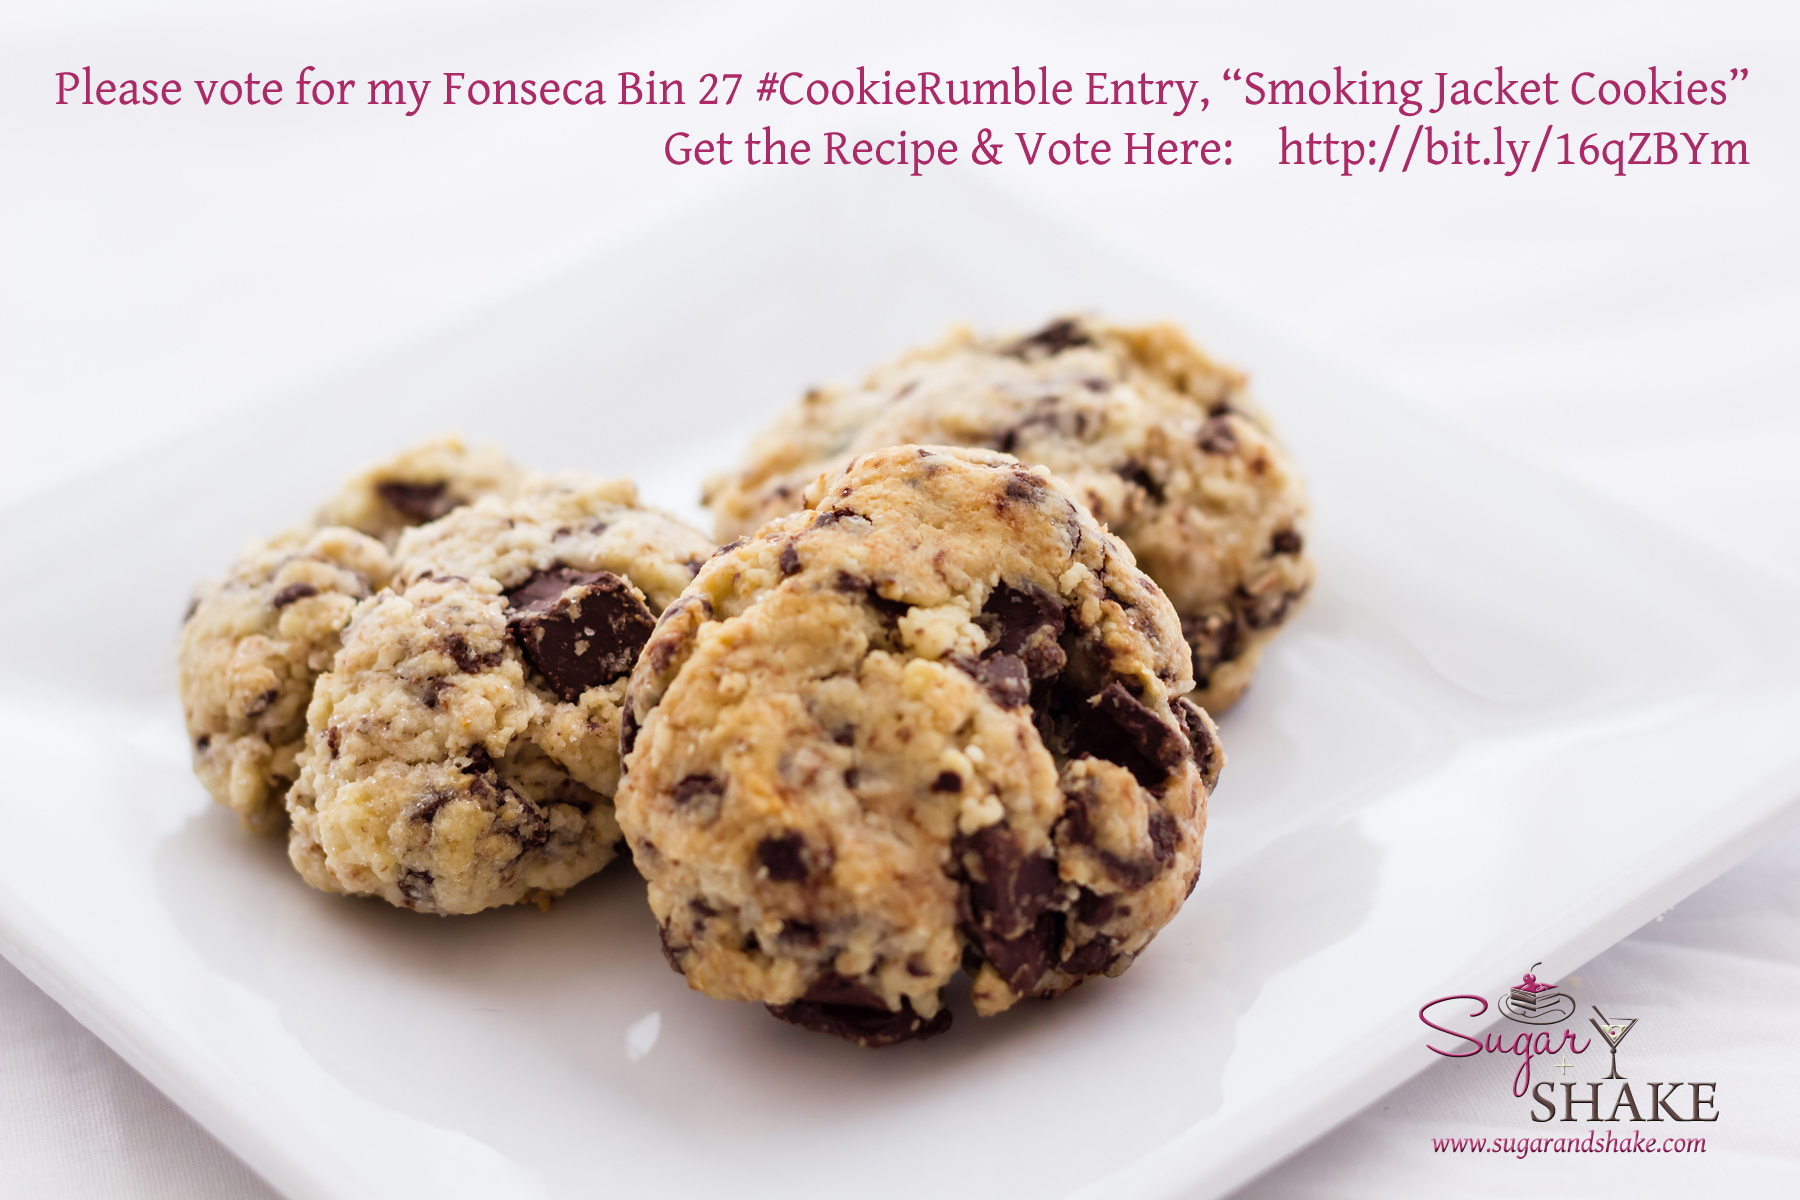 "Please vote for Sugar's ""Smoking Jacket Cookies"" (Dark Chocolate & Cheesecake Chunk Smoked Tea Shortcake Cookies) in the Fonseca BIN 27 Port Cookie Rumble contest. Here's the link to vote: http://bit.ly/16qZBYm. © 2013 Sugar + Shake"